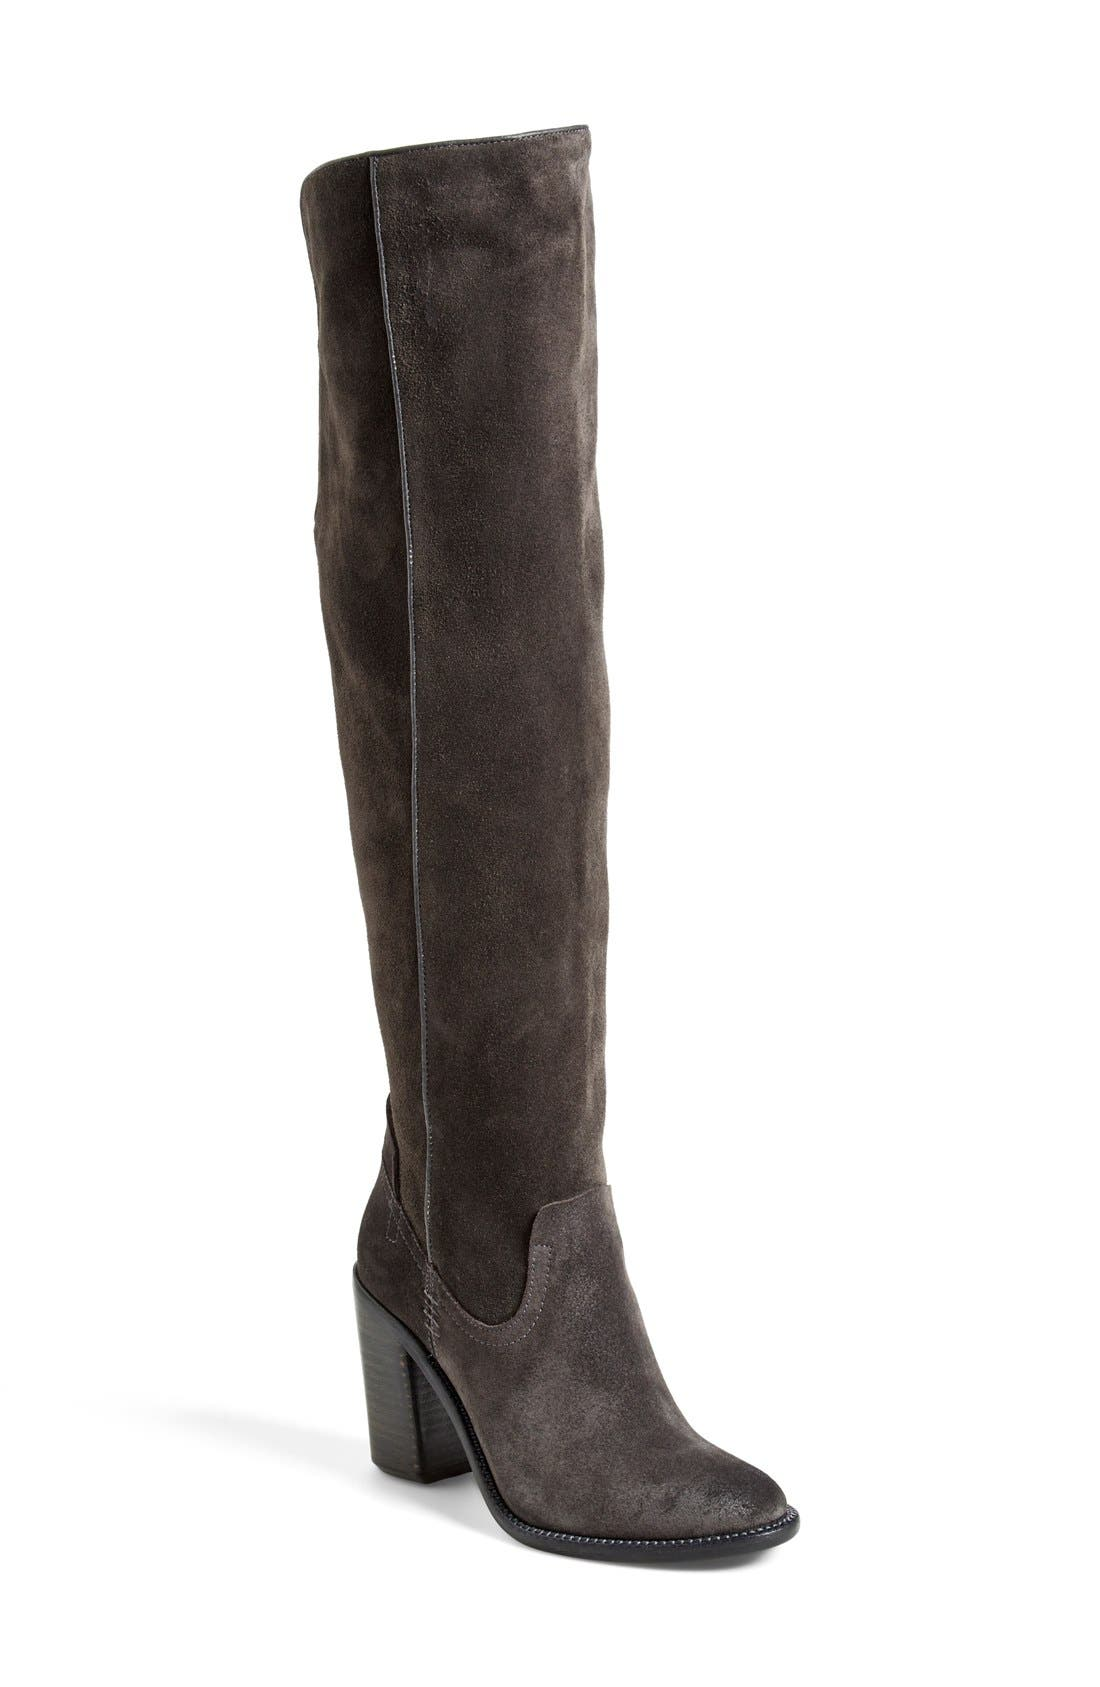 DOLCE VITA, 'Ohanna' Over the Knee Boot, Main thumbnail 1, color, 053